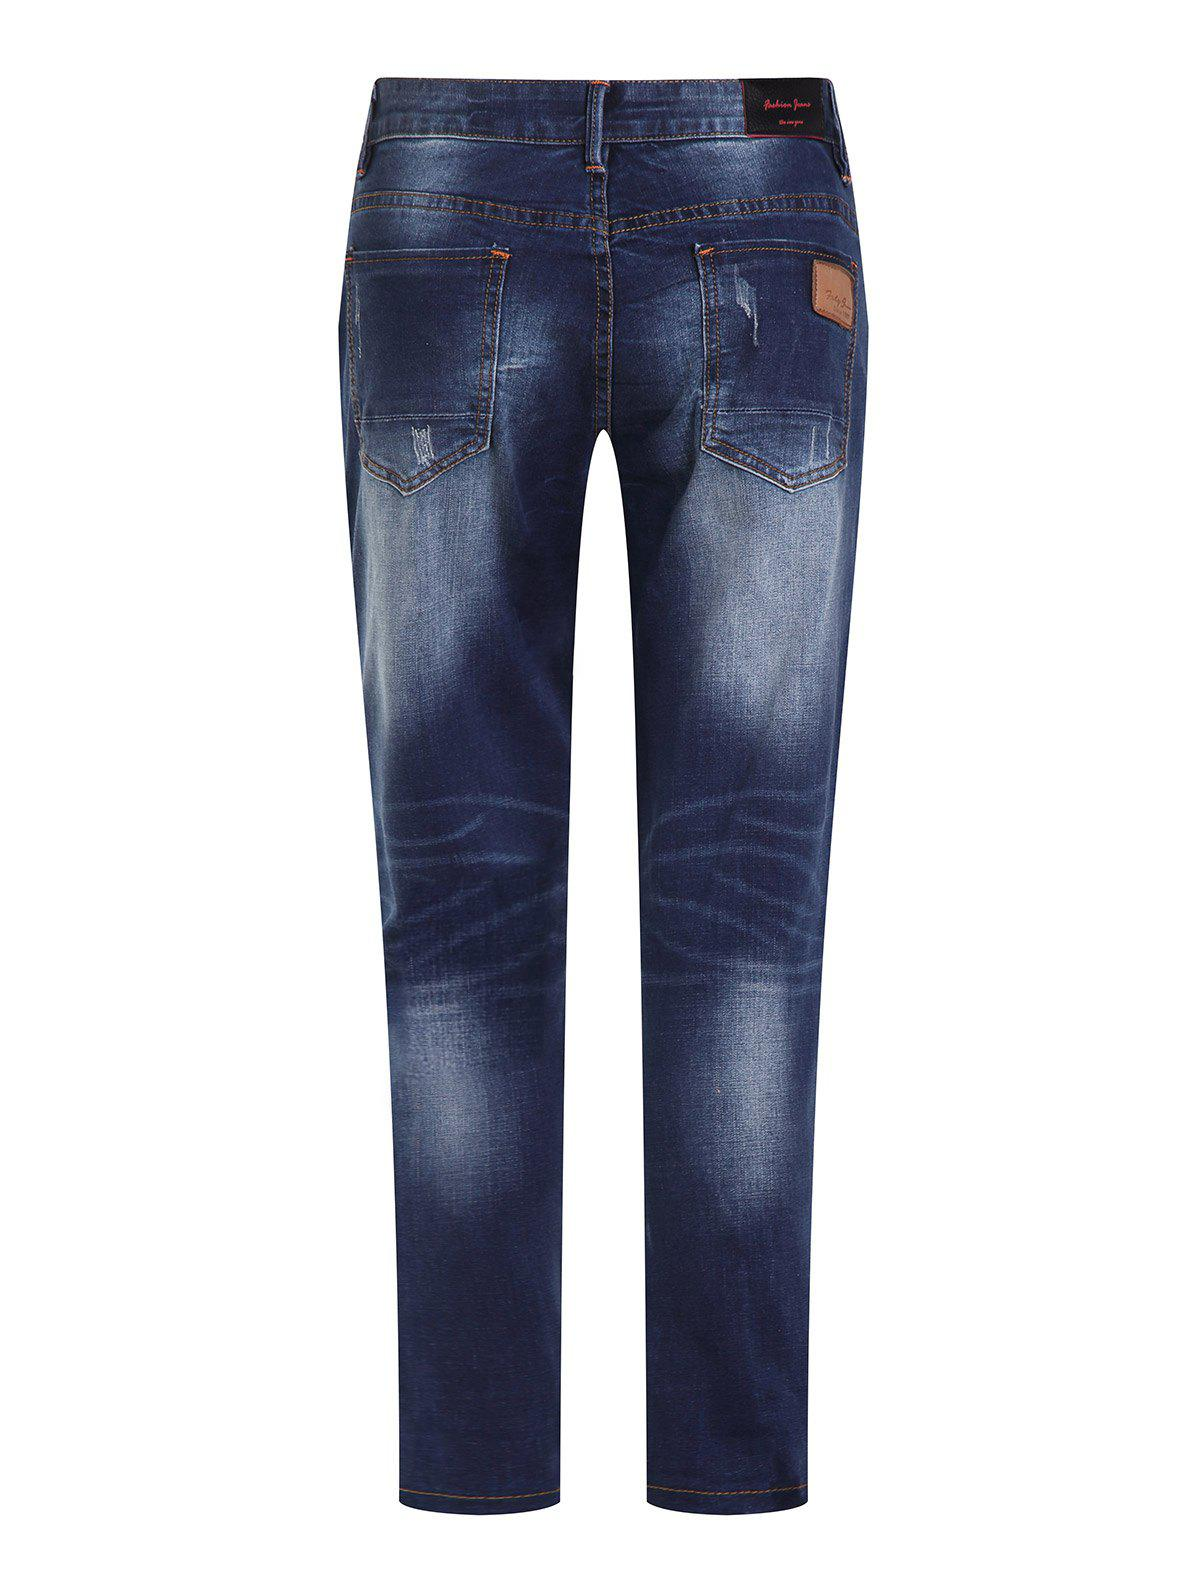 Men's Fashion Ripped Zip Fly Straight Legs Cropped Jeans - BLUE GRAY 36